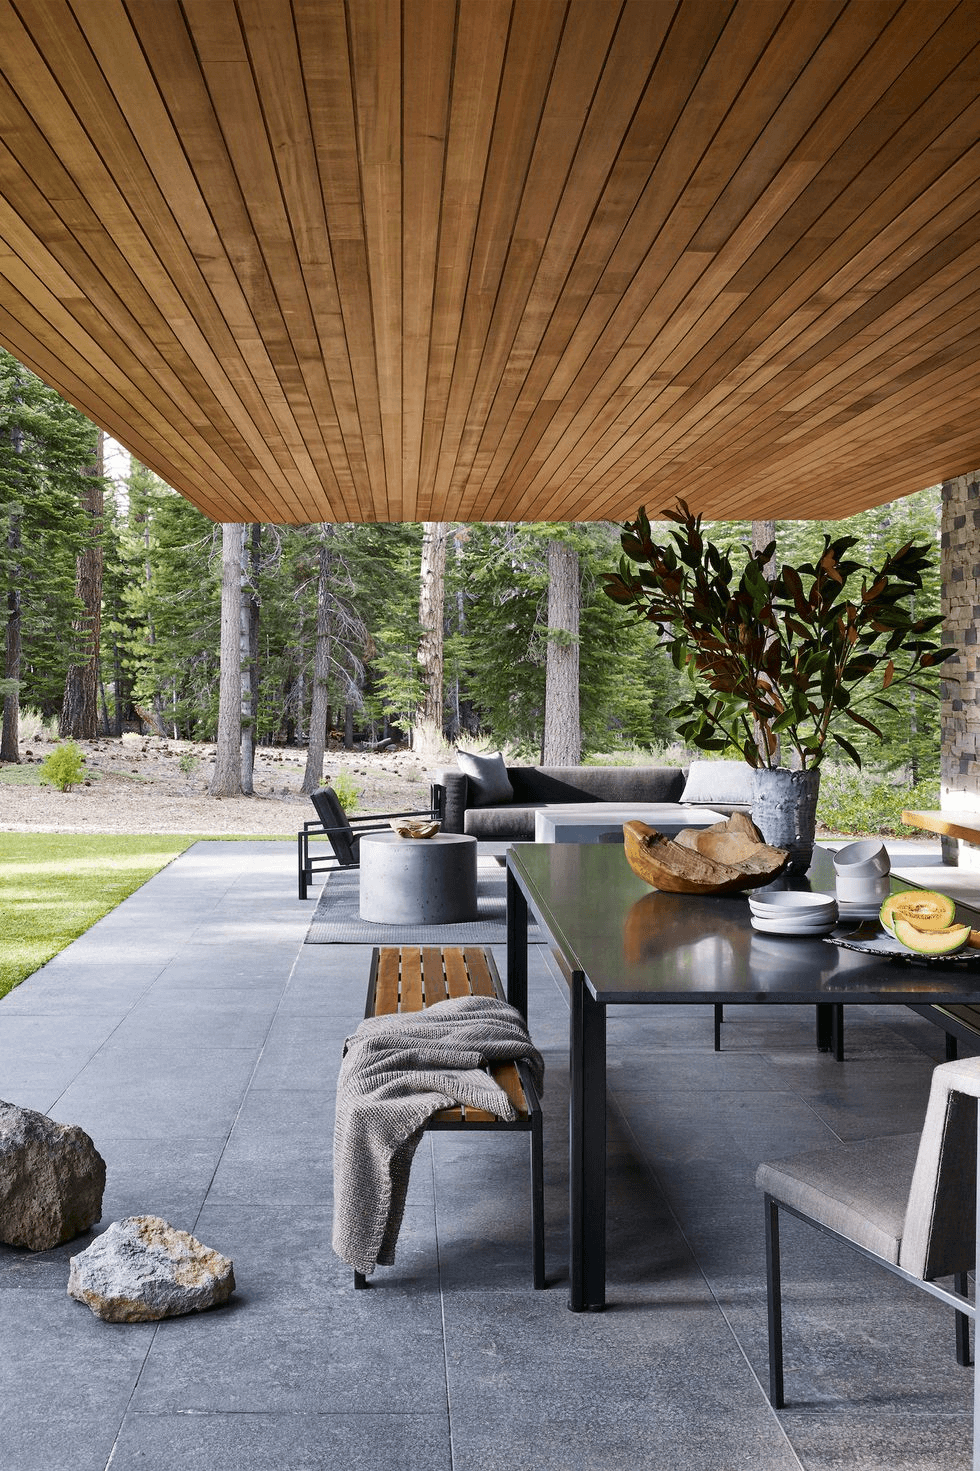 WOODEN MARBLE AND SANDSTONE BACKYARD PORCH DESIGN IDEAS